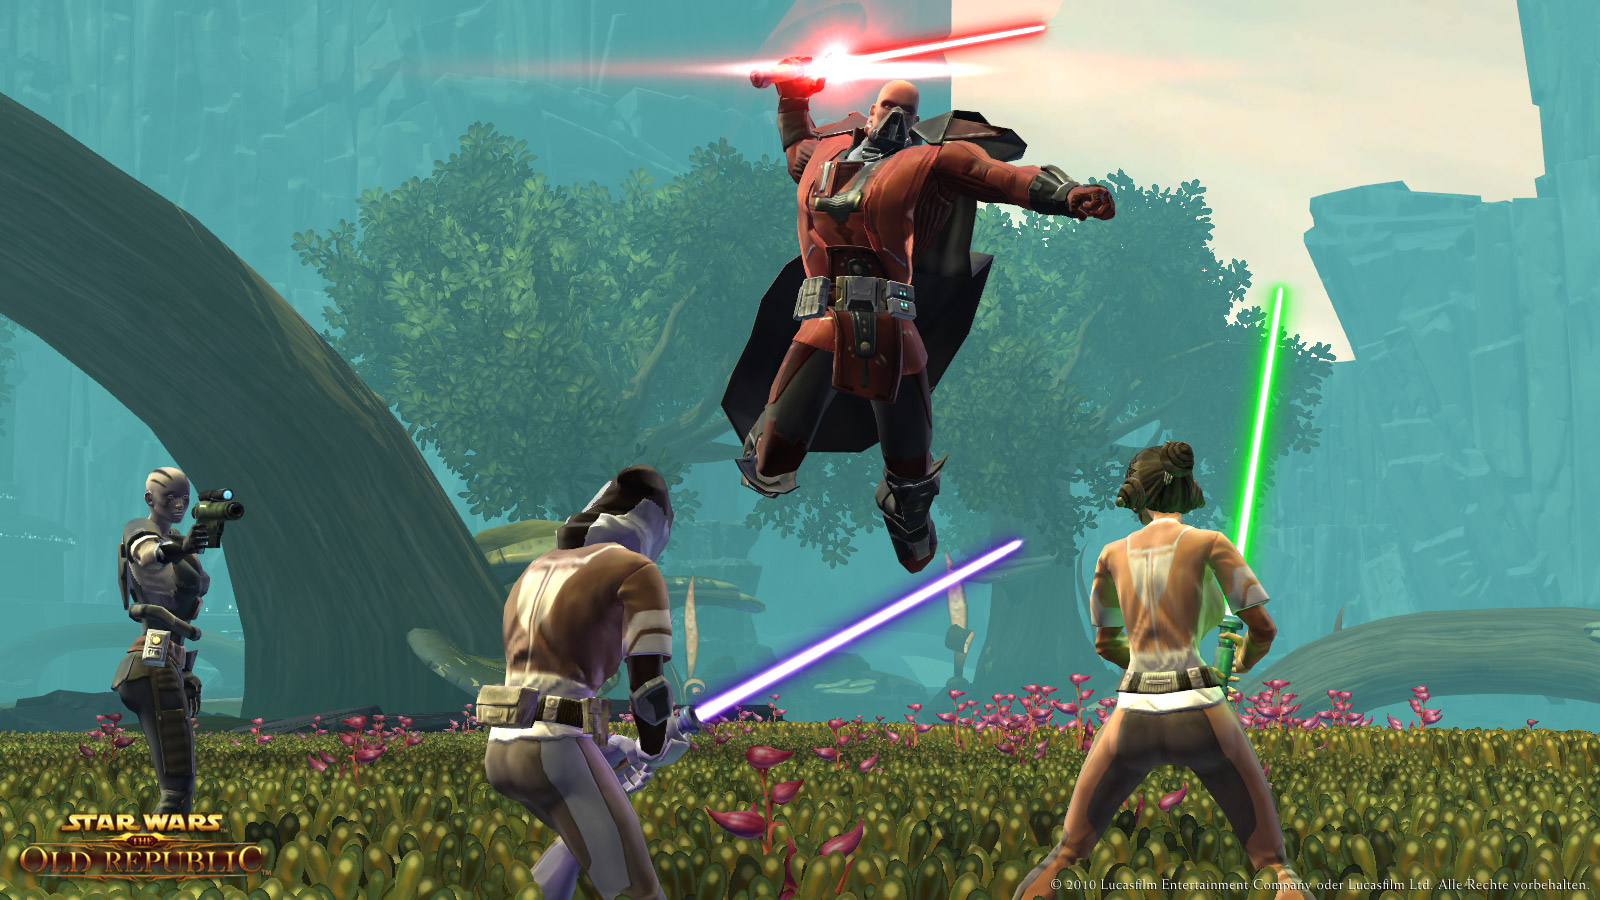 http://cdn-www.swtor.com//sites/all/files/de/classes/sith-warrior/images/advclass/ss3_1600x900.jpg